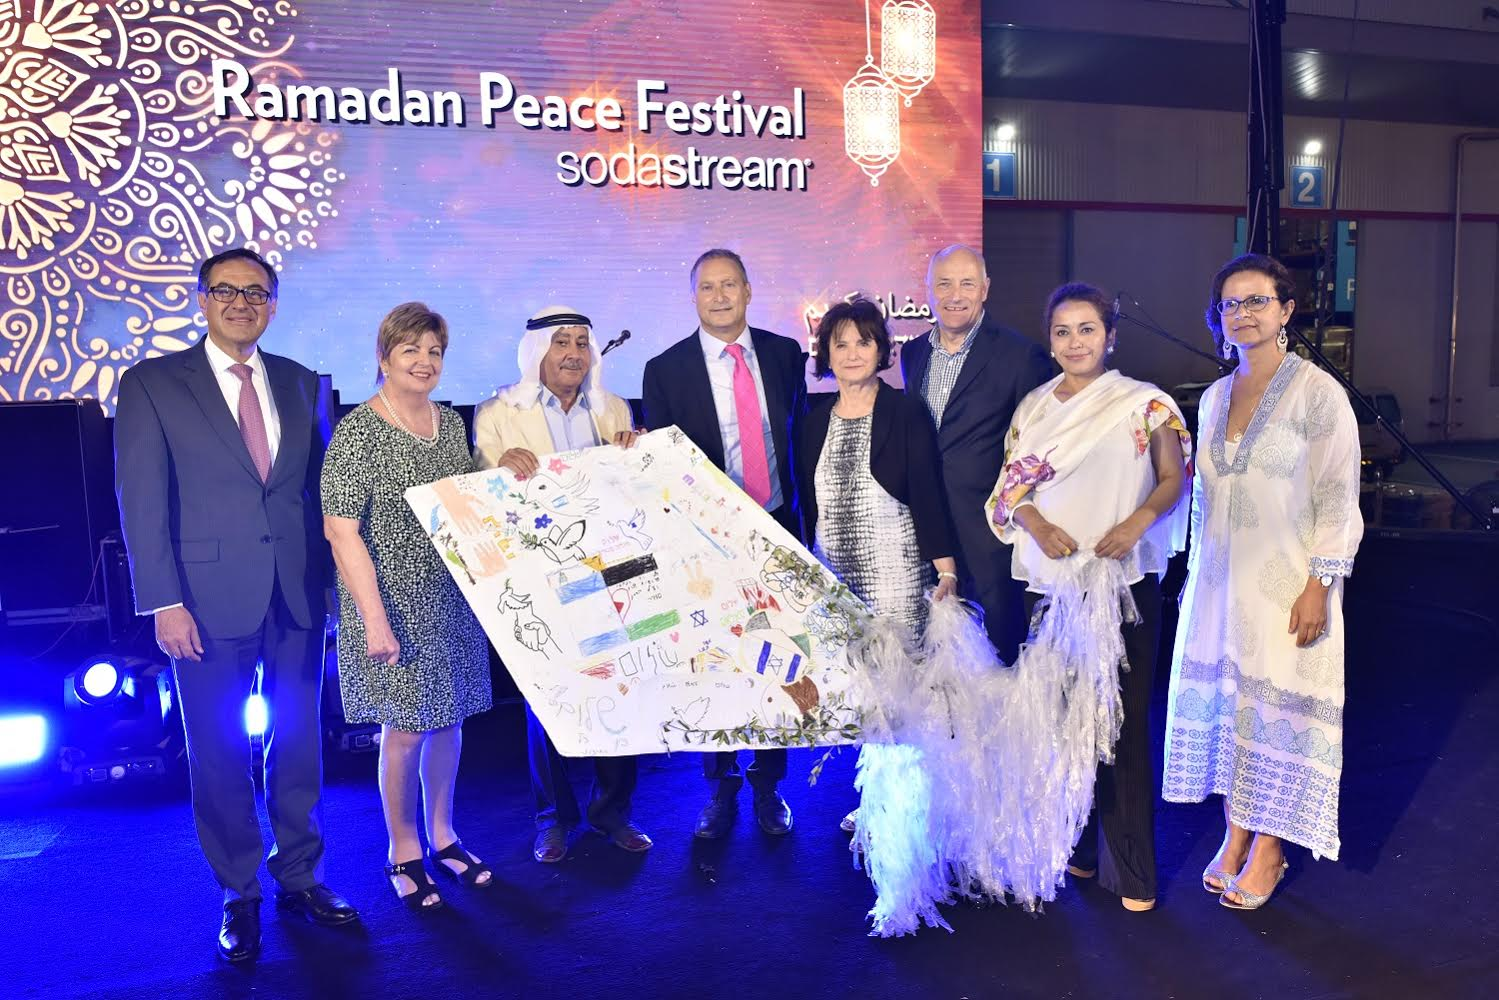 Muslim, Jewish Employees Of Sodastream Break Bread As Ramadan Draws To Close photo